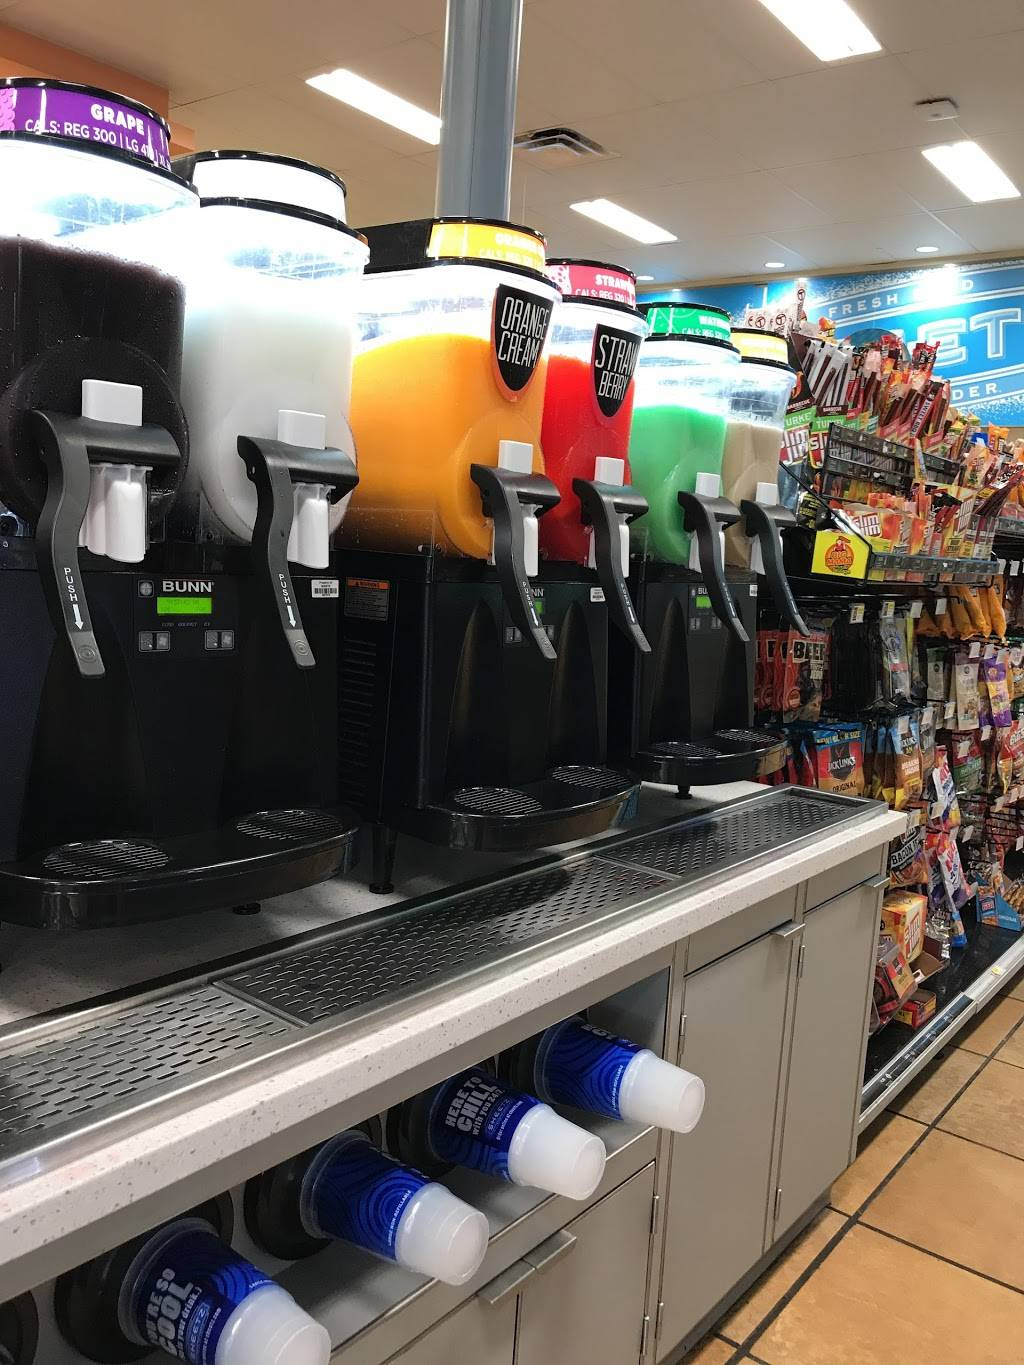 Sheetz #504 | cafe | 157 N Old Carriage Rd, Rocky Mount, NC 27804, USA | 2524422025 OR +1 252-442-2025